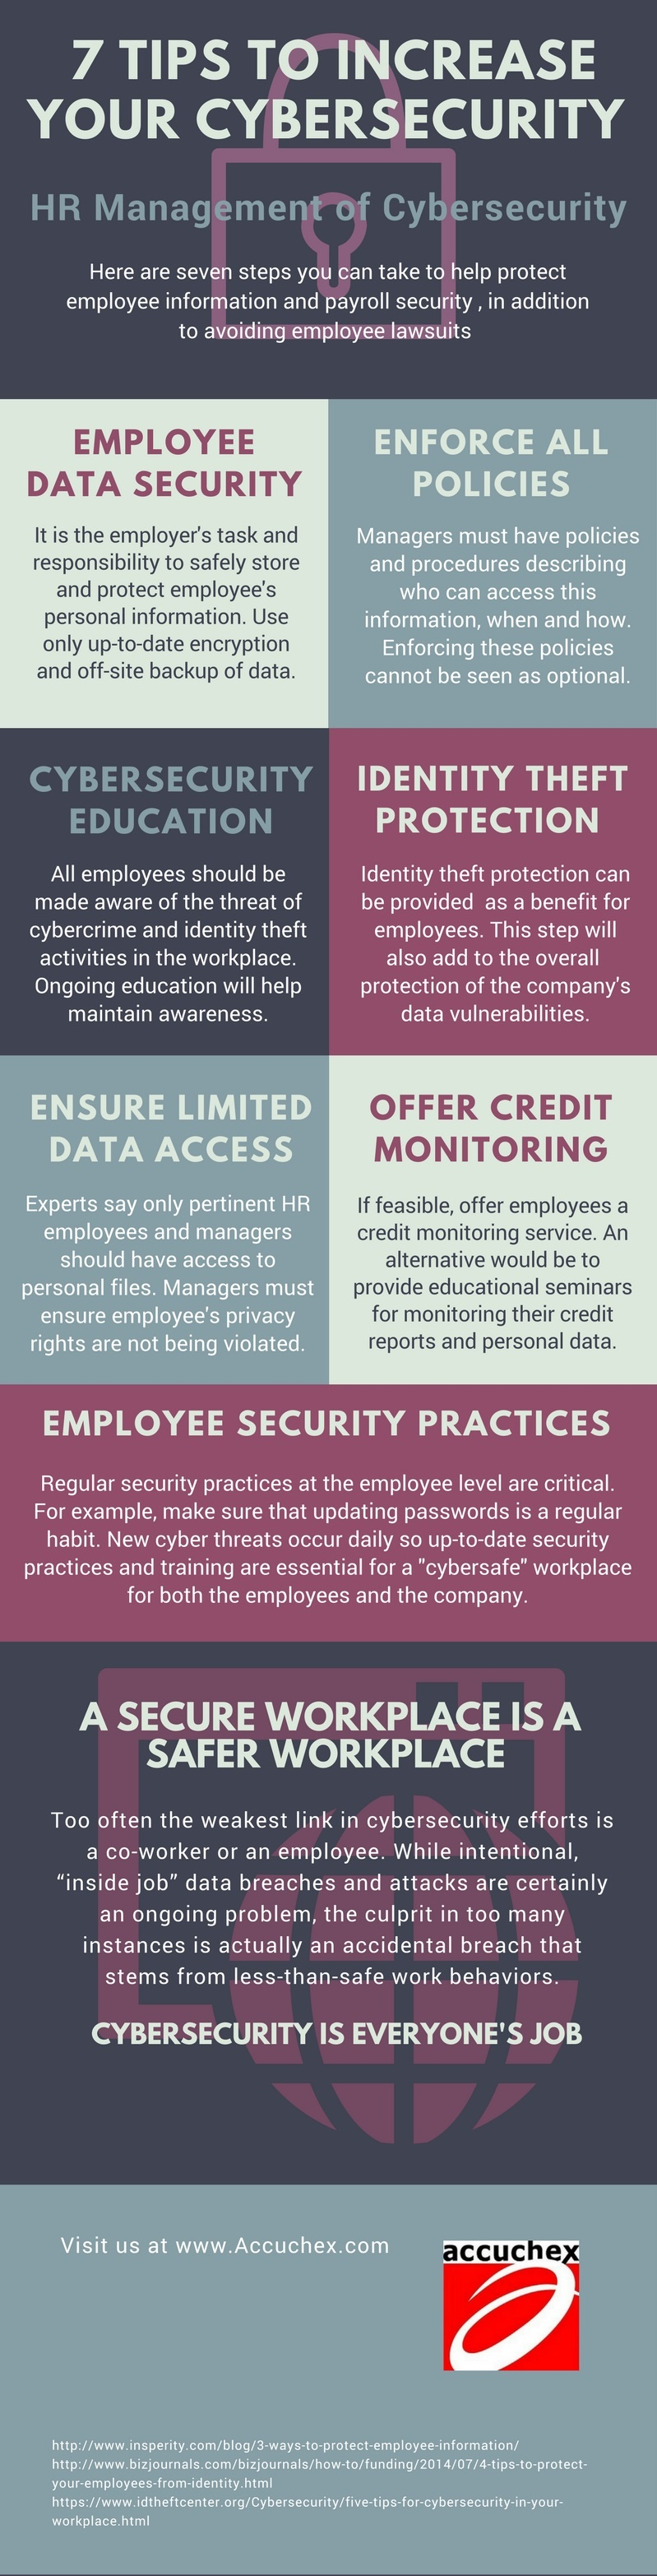 7 hr management cybersecurity tips